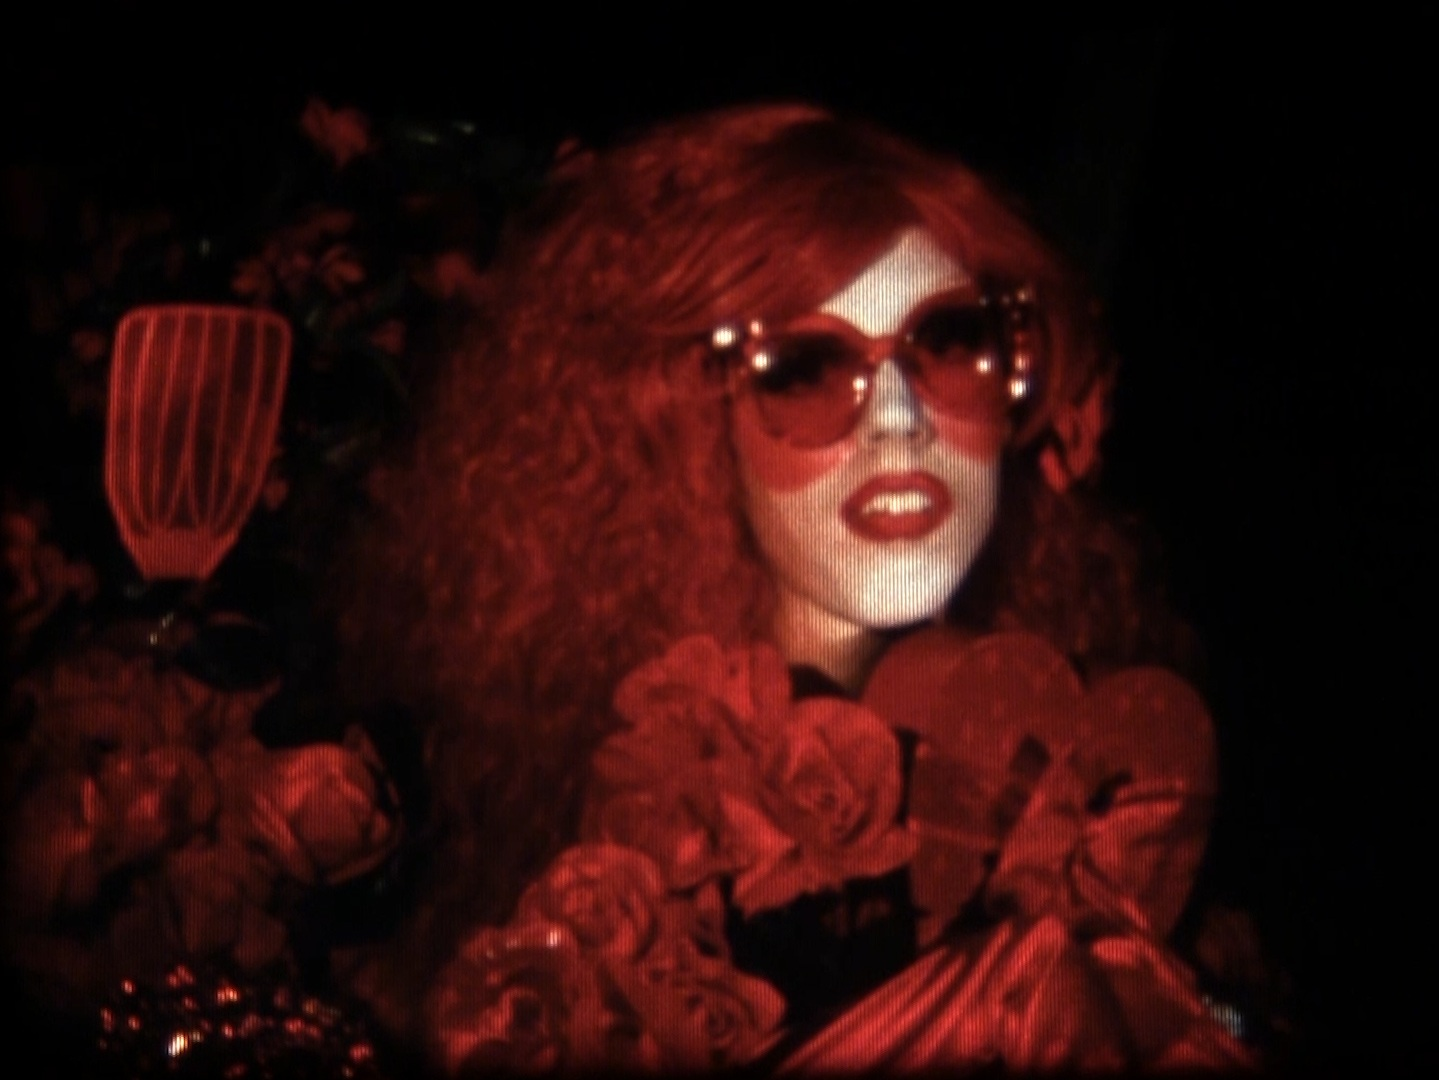 Song for Rent, after Jack Smith     Malic Amalya   2018 | 6 minutes | USA | 16mm | color | sound  With Kate Smith singing God Bless America looped in the background, experimental filmmaker Jack Smith starred as Rose Courtyard—a drag character based on Rose Kennedy—in his 1969 film,  Song for Rent . In this adaptation, Barbarella Bush joins Rose in a campy exploration of US nationalism, queer assimilation, and denunciation. -MA